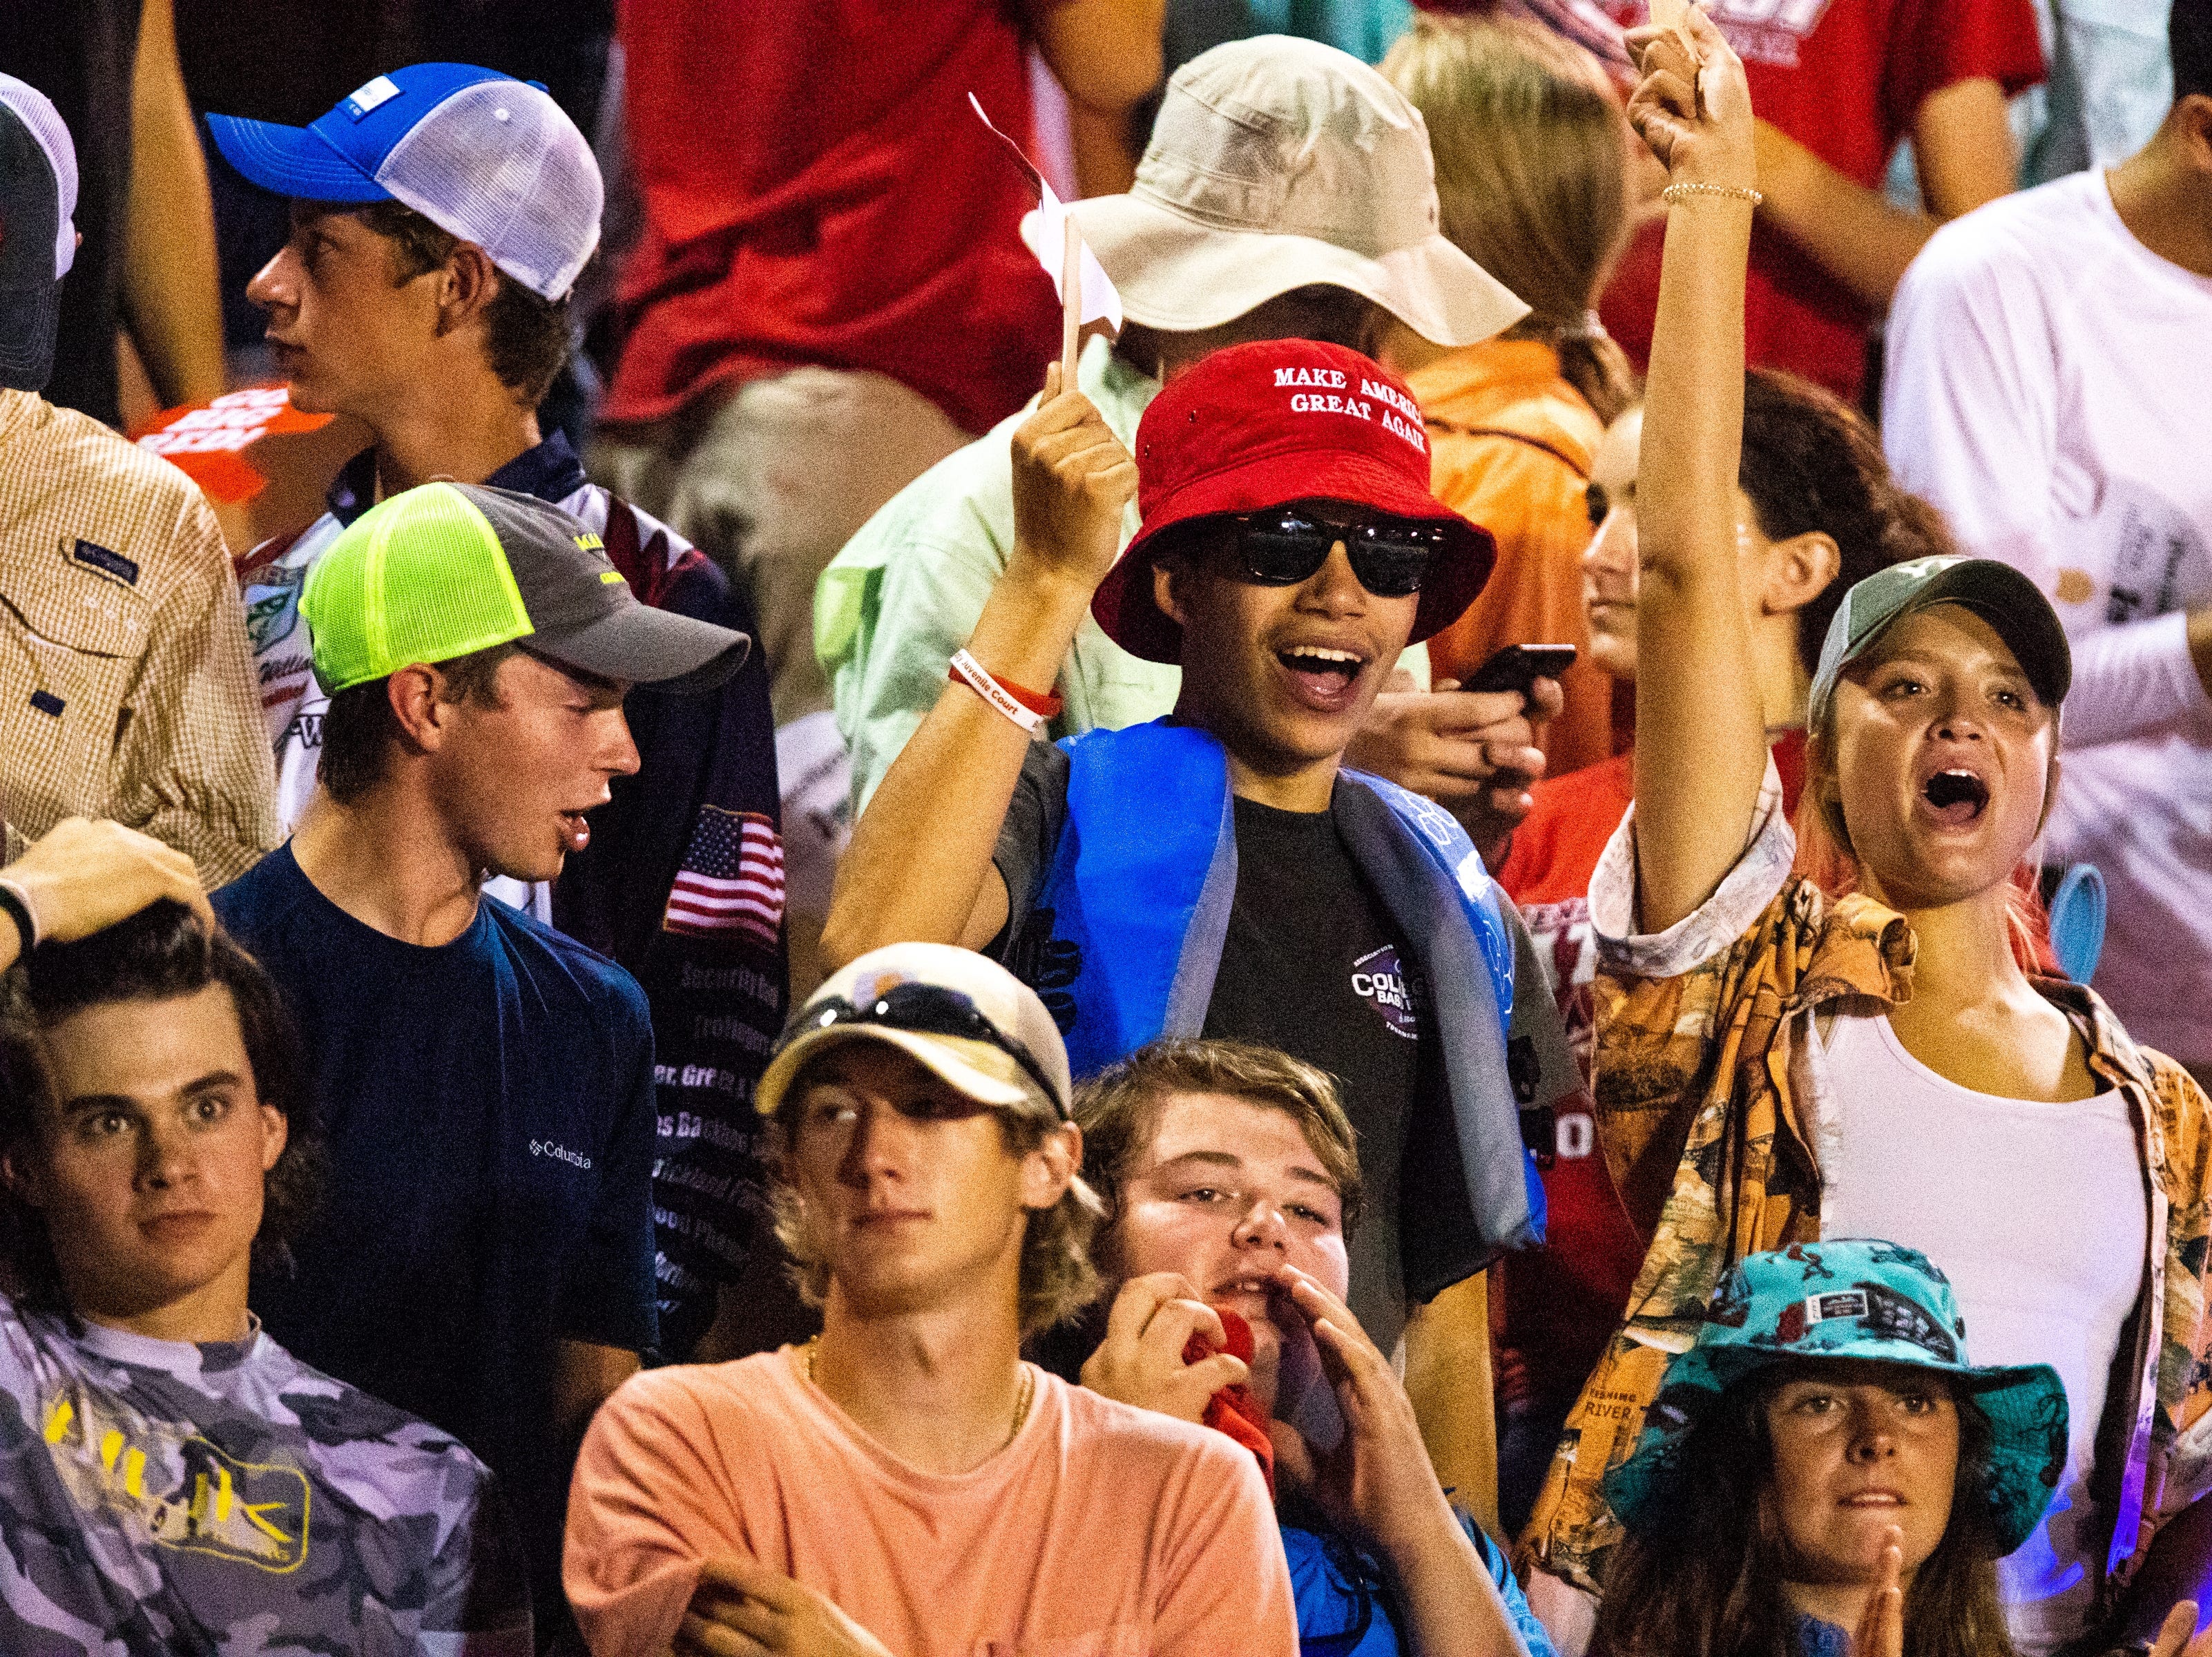 Henry County students cheer for their team during the second half at Henry County Friday, Sept. 14, 2018, in Paris, Tenn.